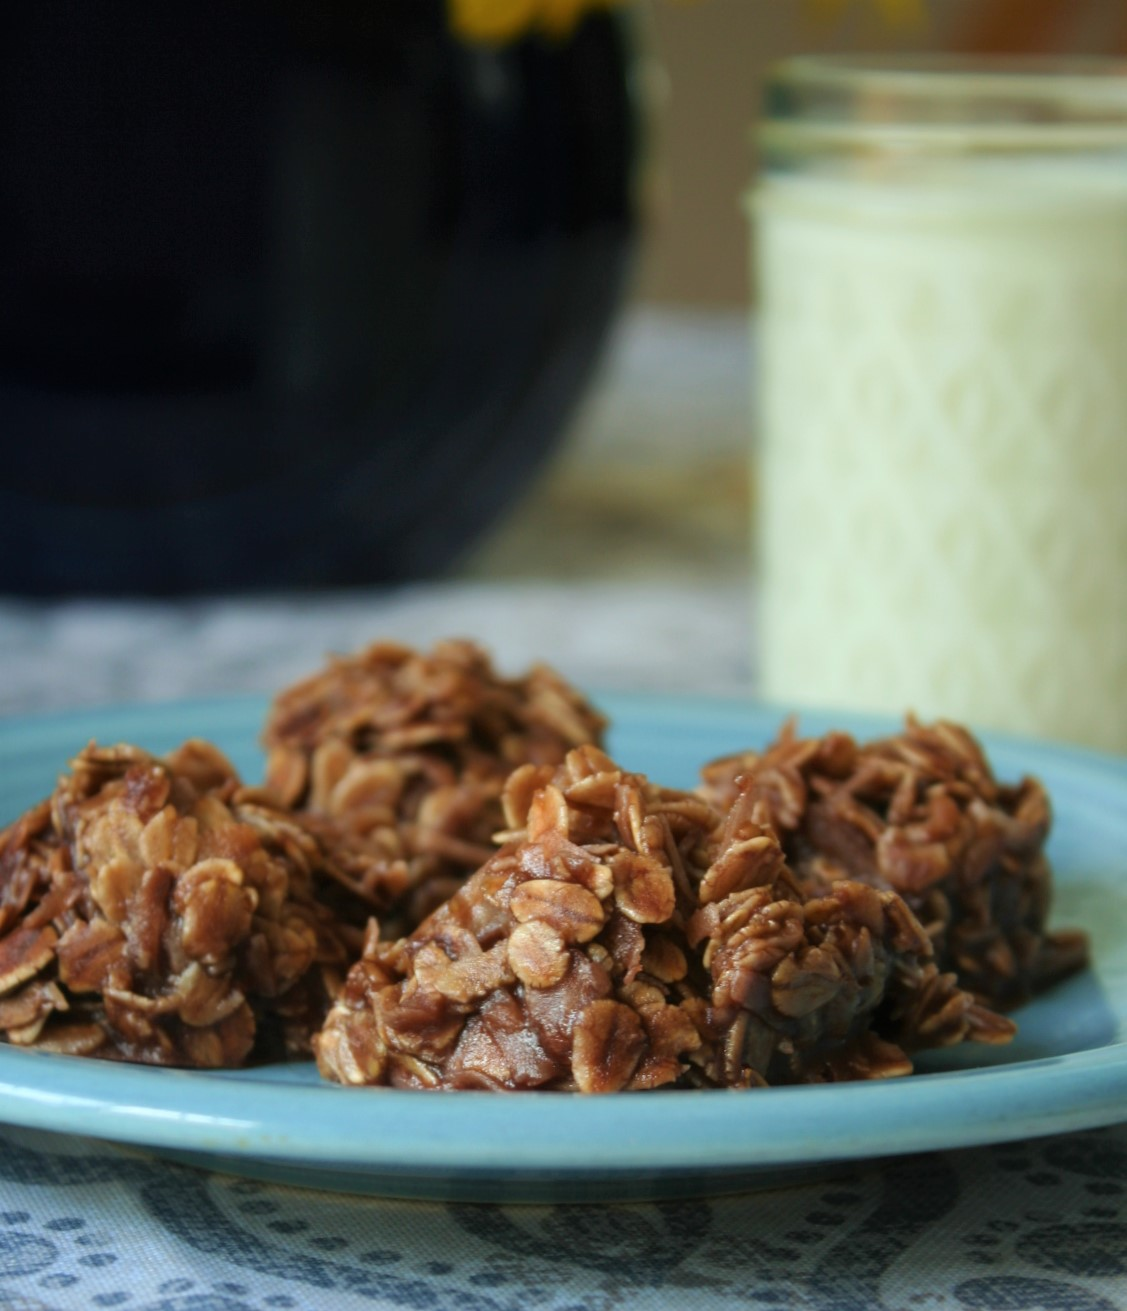 Chocolate No-Bake Cookies, easy recipe, summer, oats, coconut, nuts, chocolate, no-bake